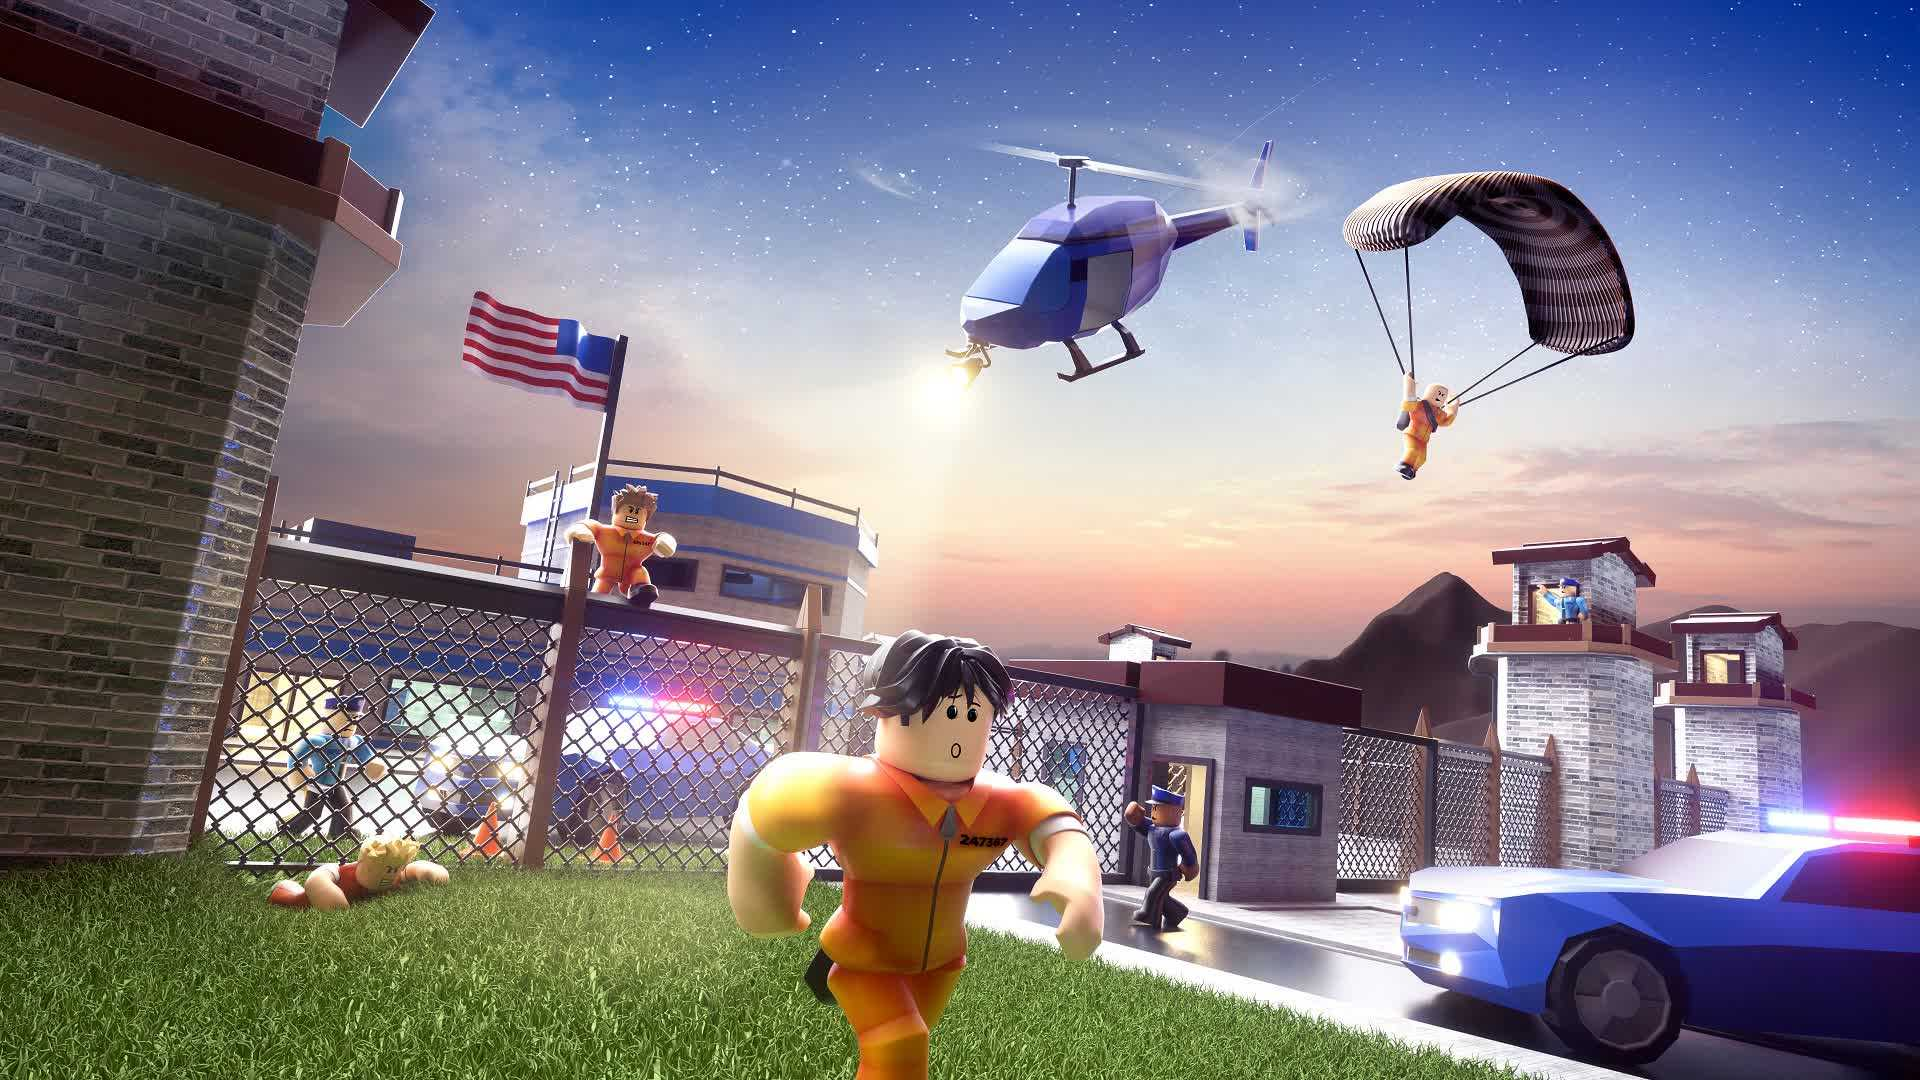 Roblox hit with $200 million lawsuit over creators